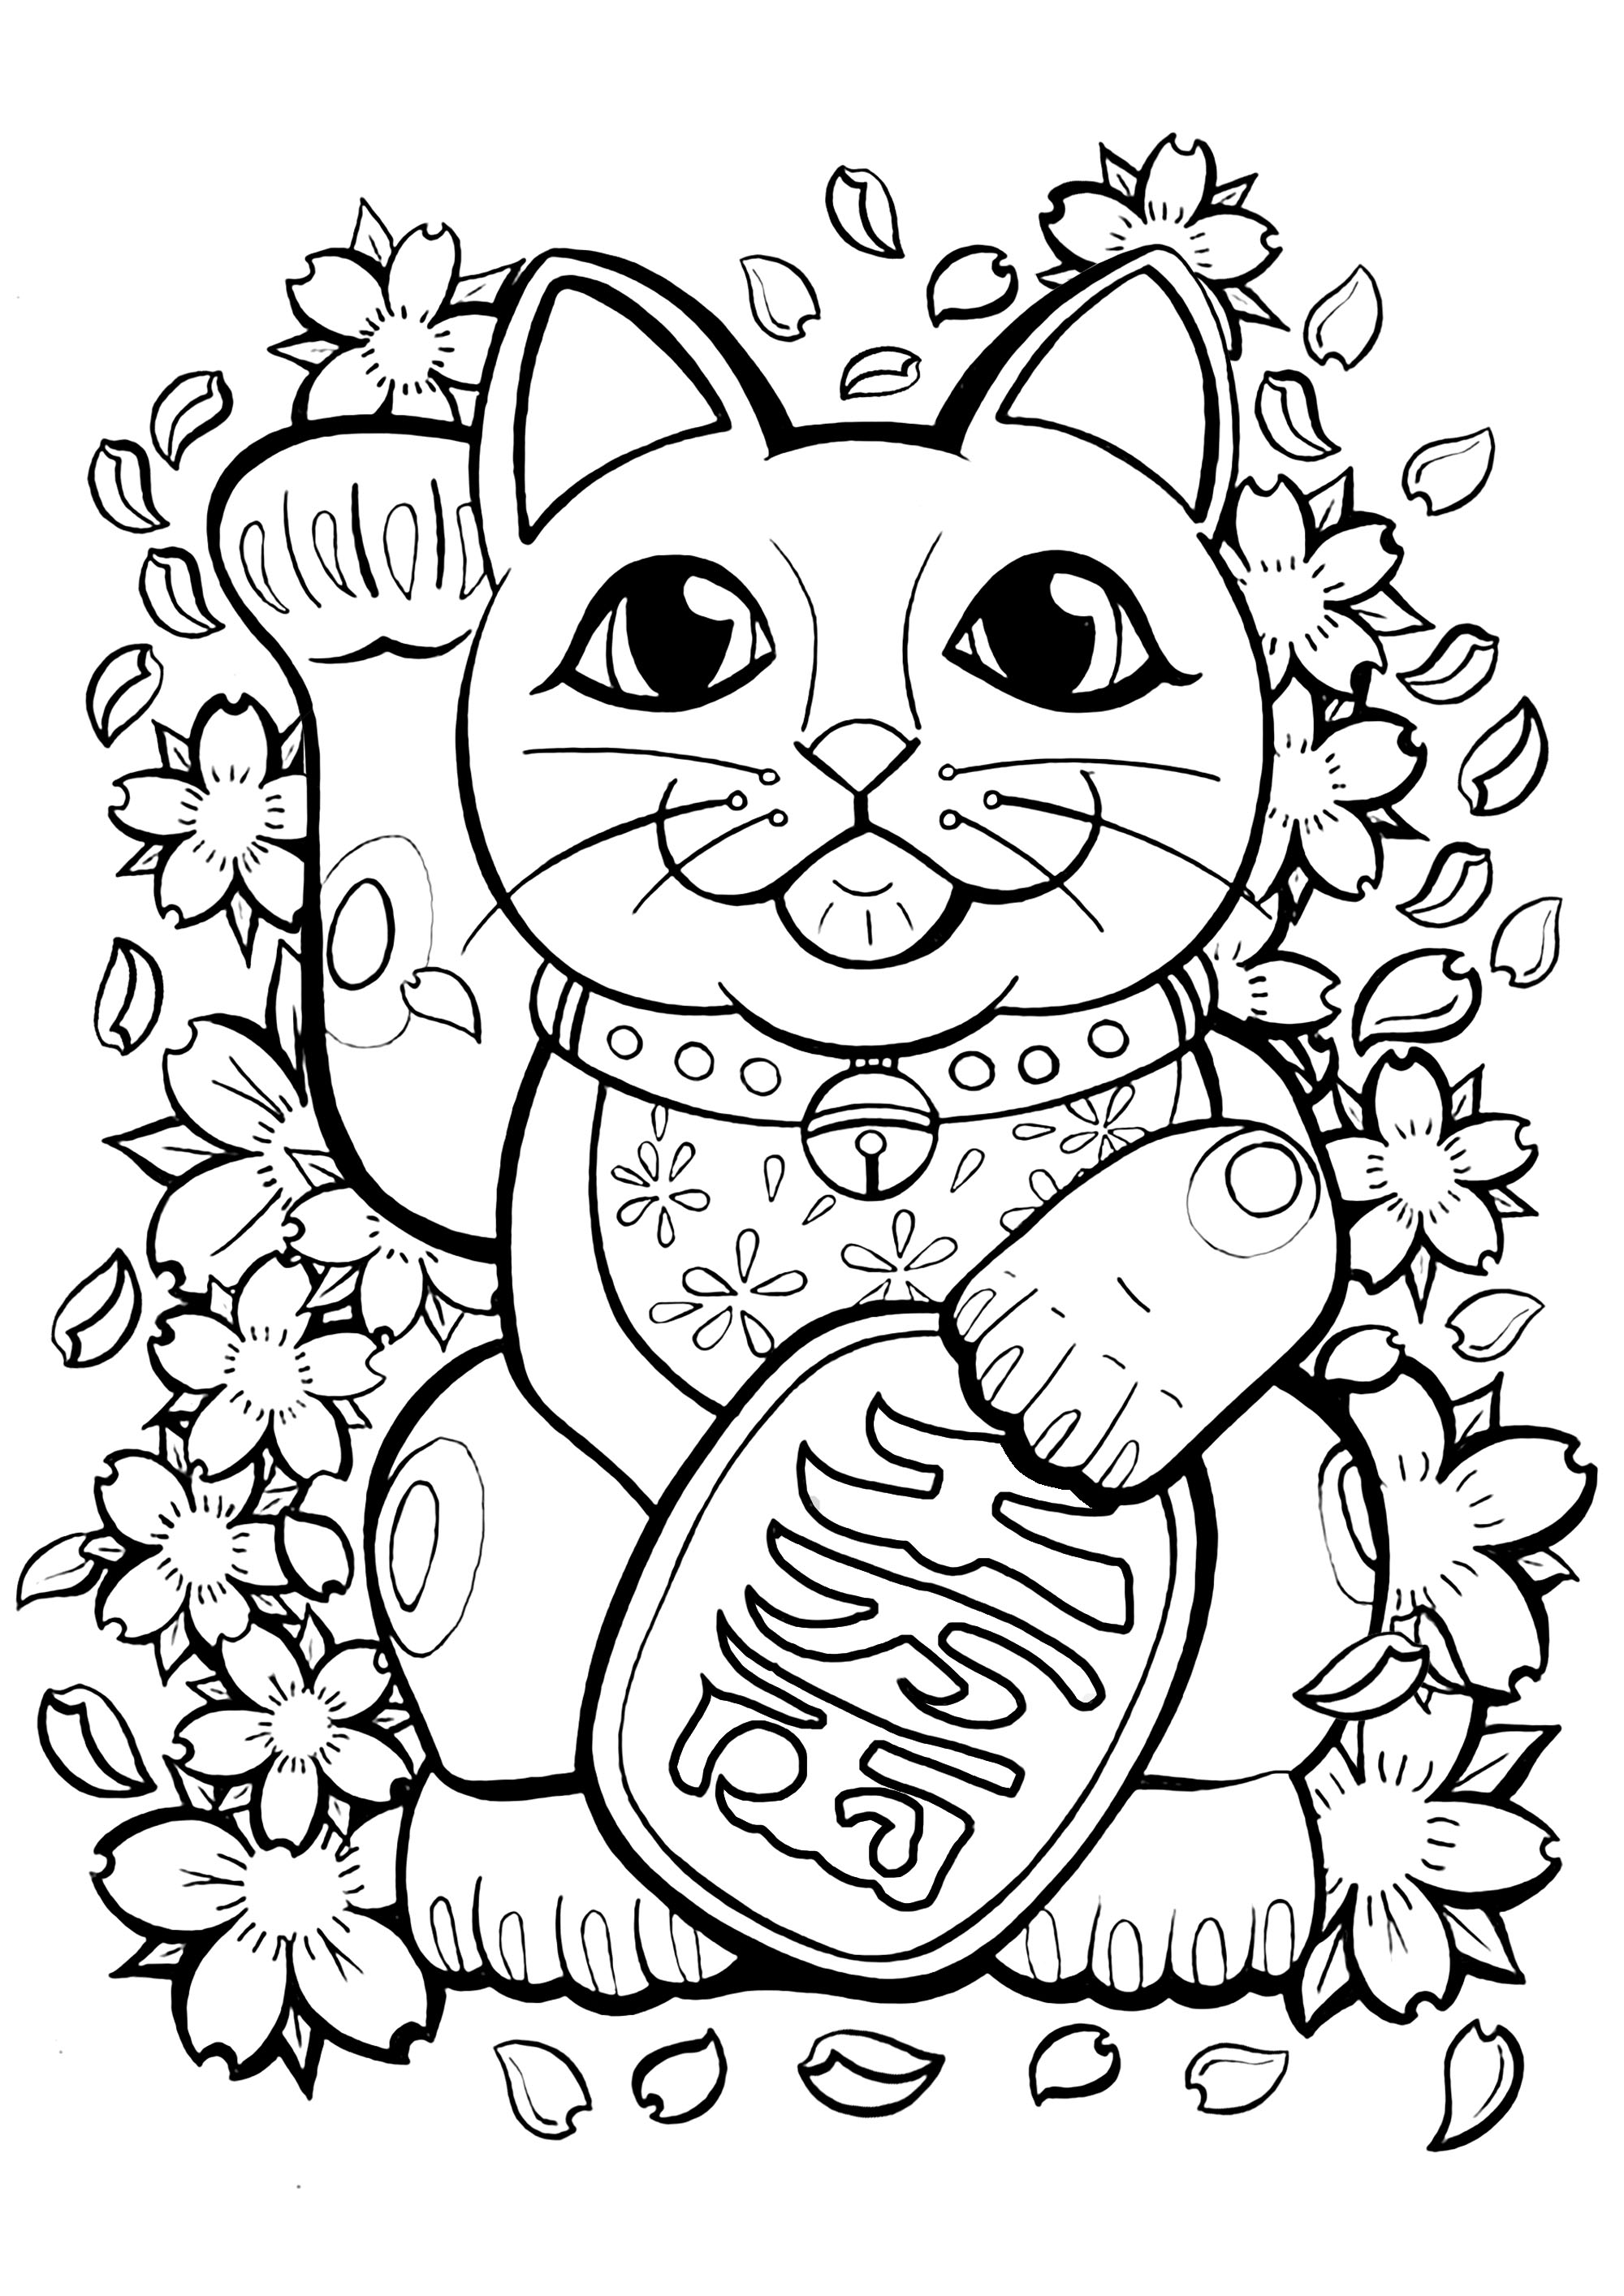 Color this Maneki Neko (literally 'beckoning cat') and all the cute elements around him